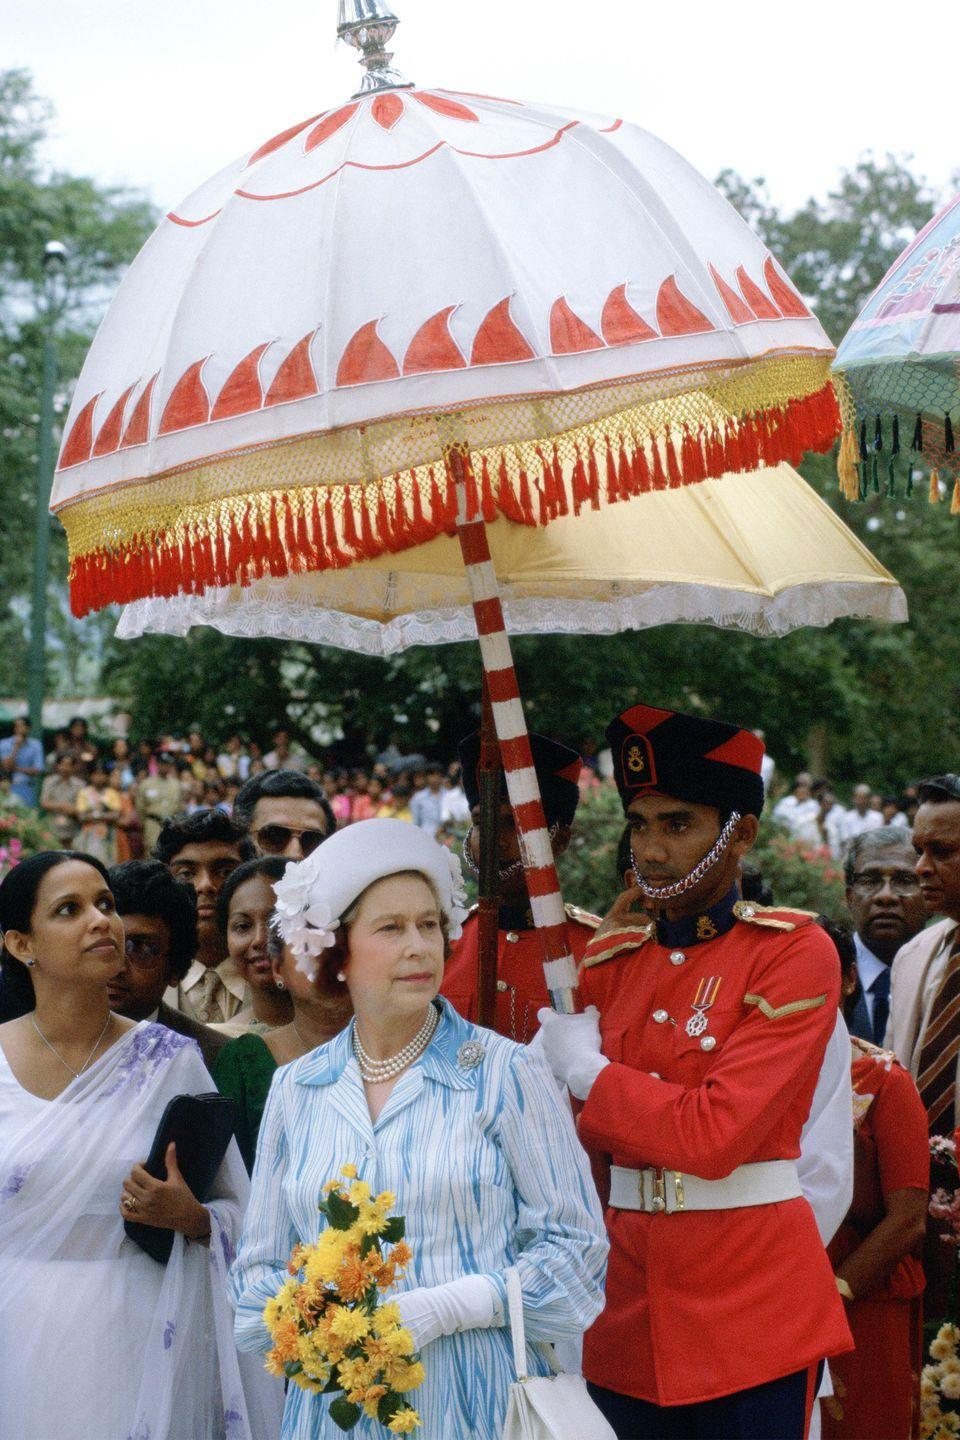 <p>In a blue and white striped dress with a matching hat, the queen carried a bouquet of yellow flowers when she visited the Peradeniya Gardens in Sri Lanka.</p>